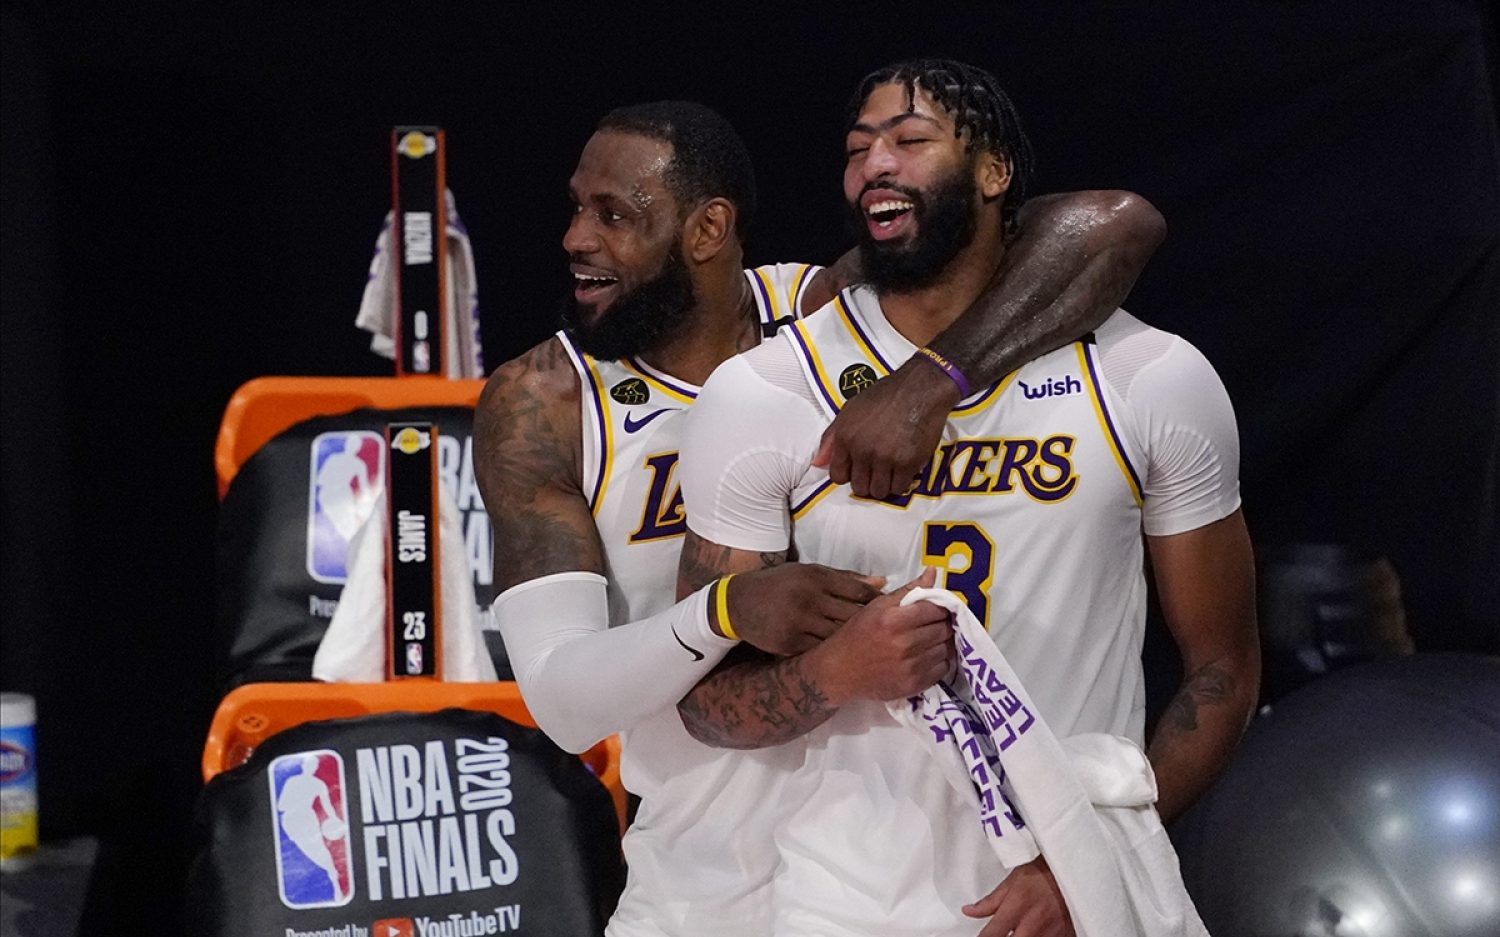 Pandemic finals a bust for NBA